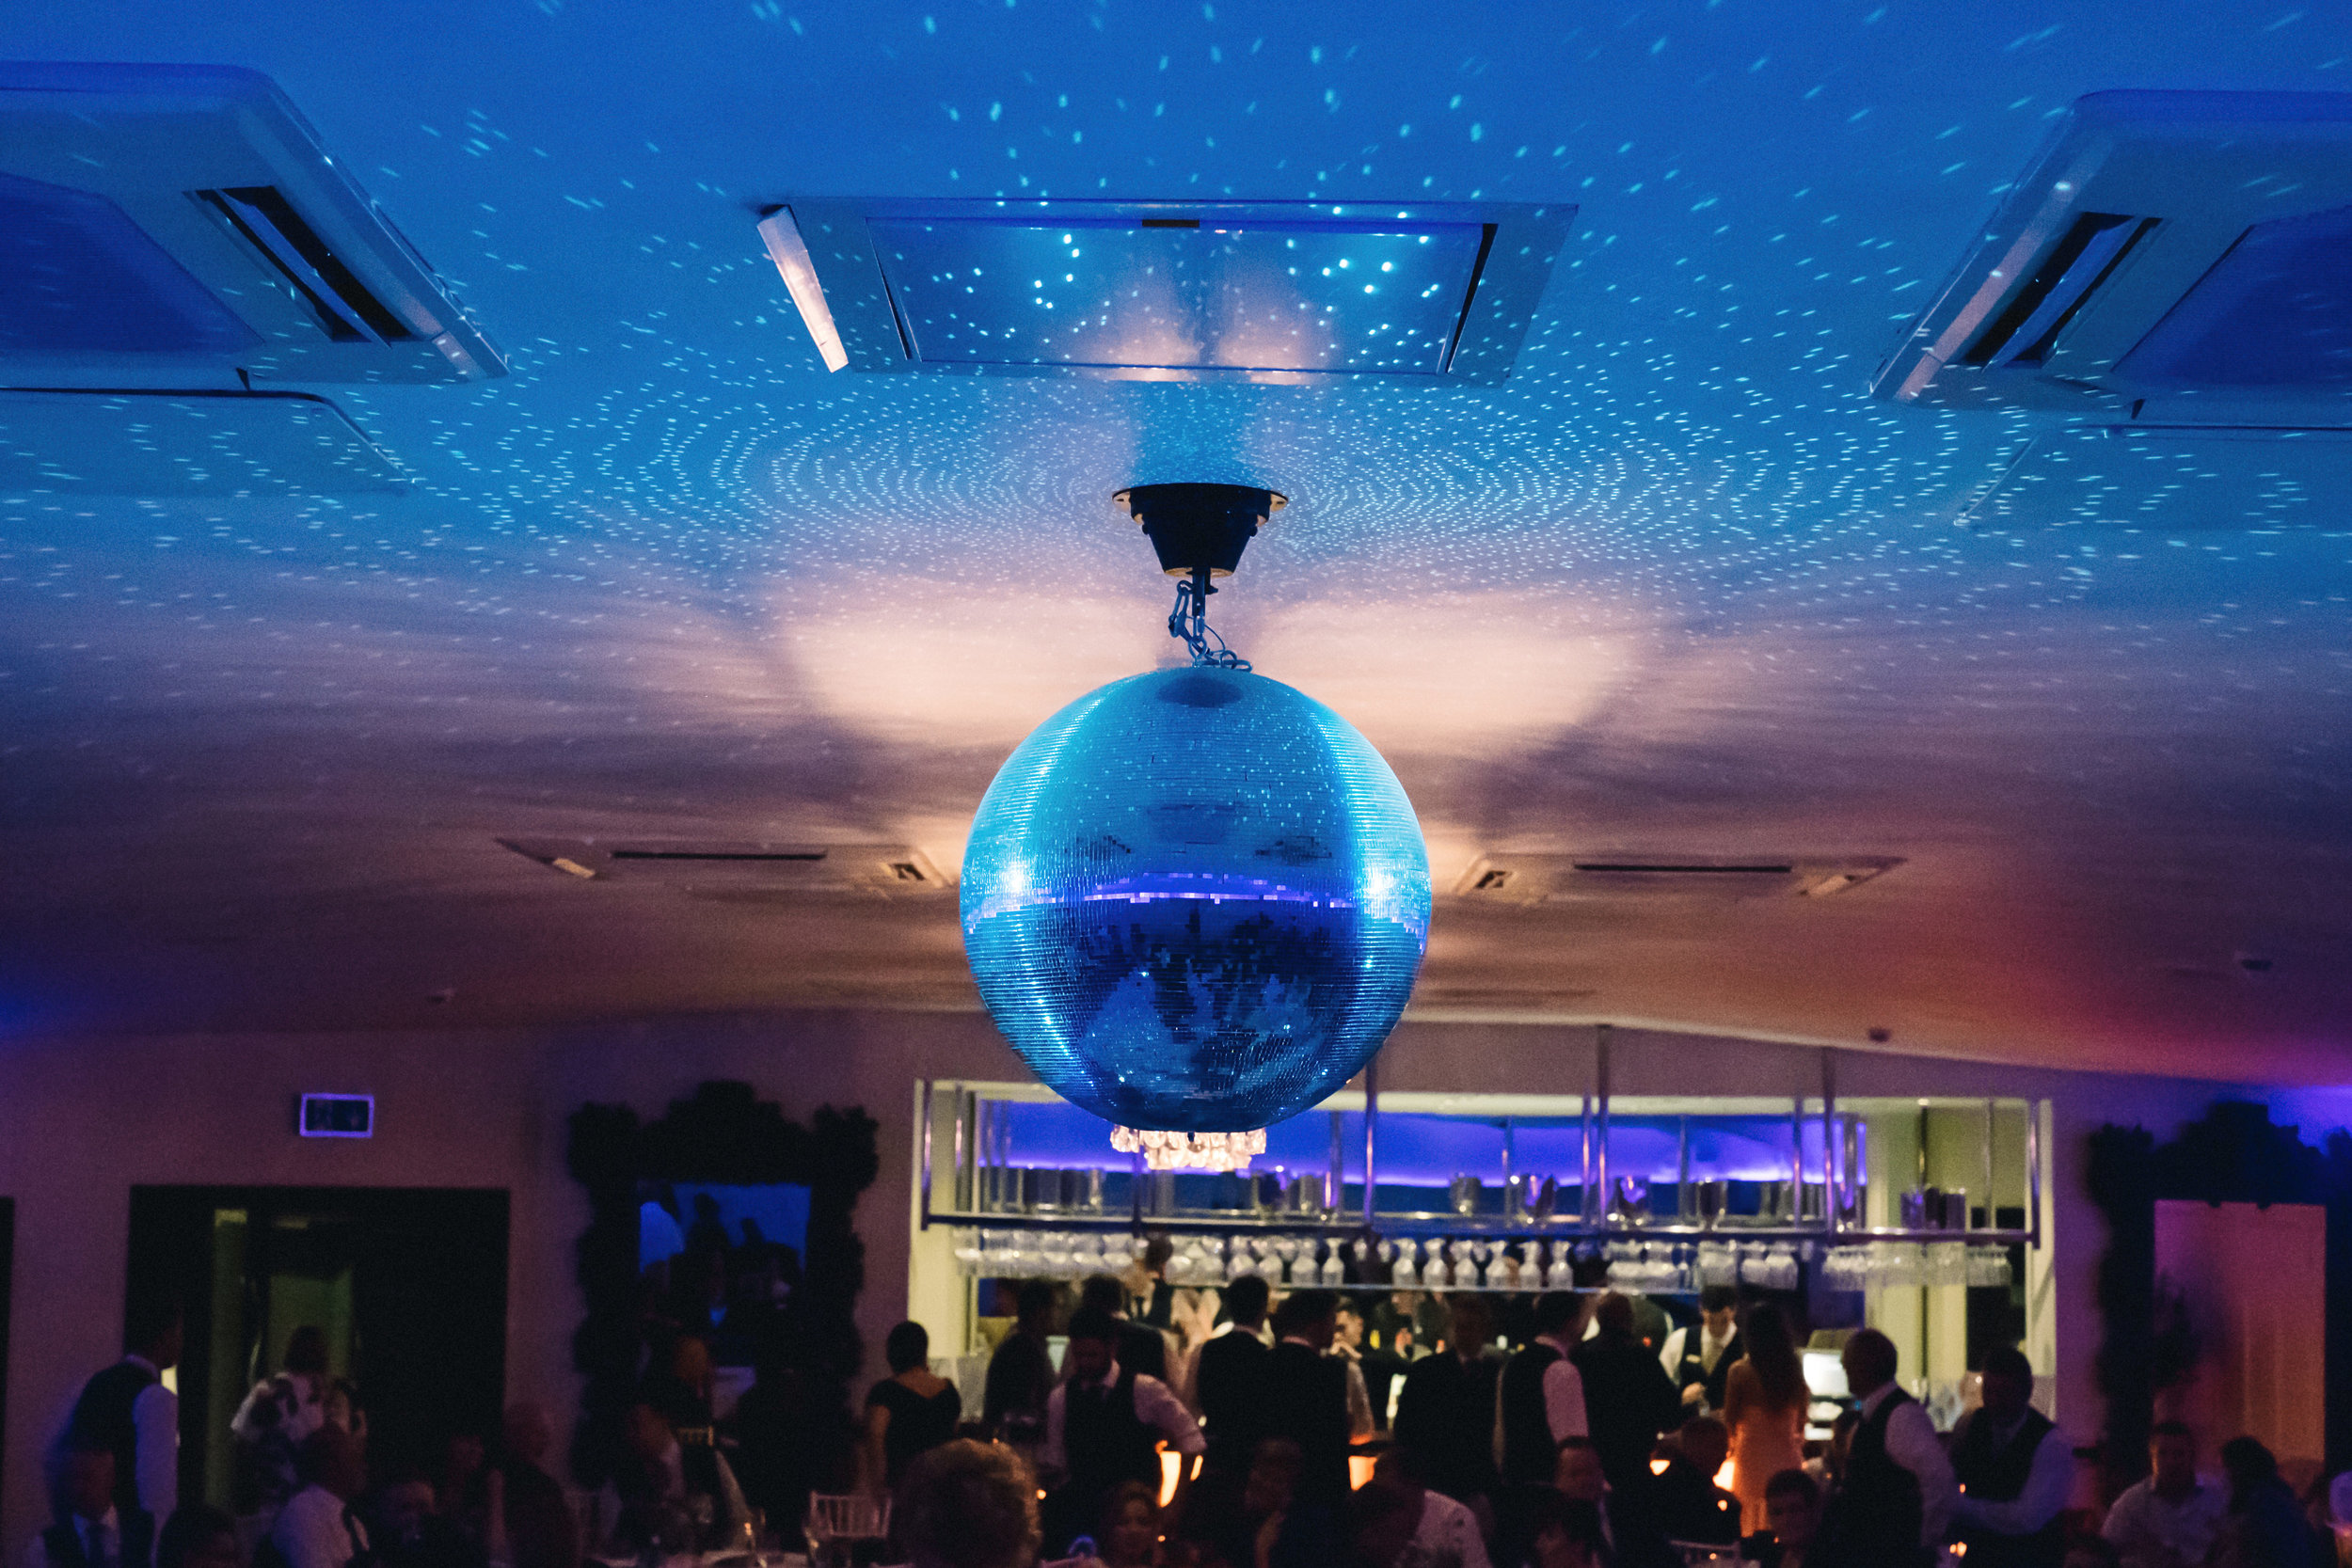 Disco ball and dancing guests